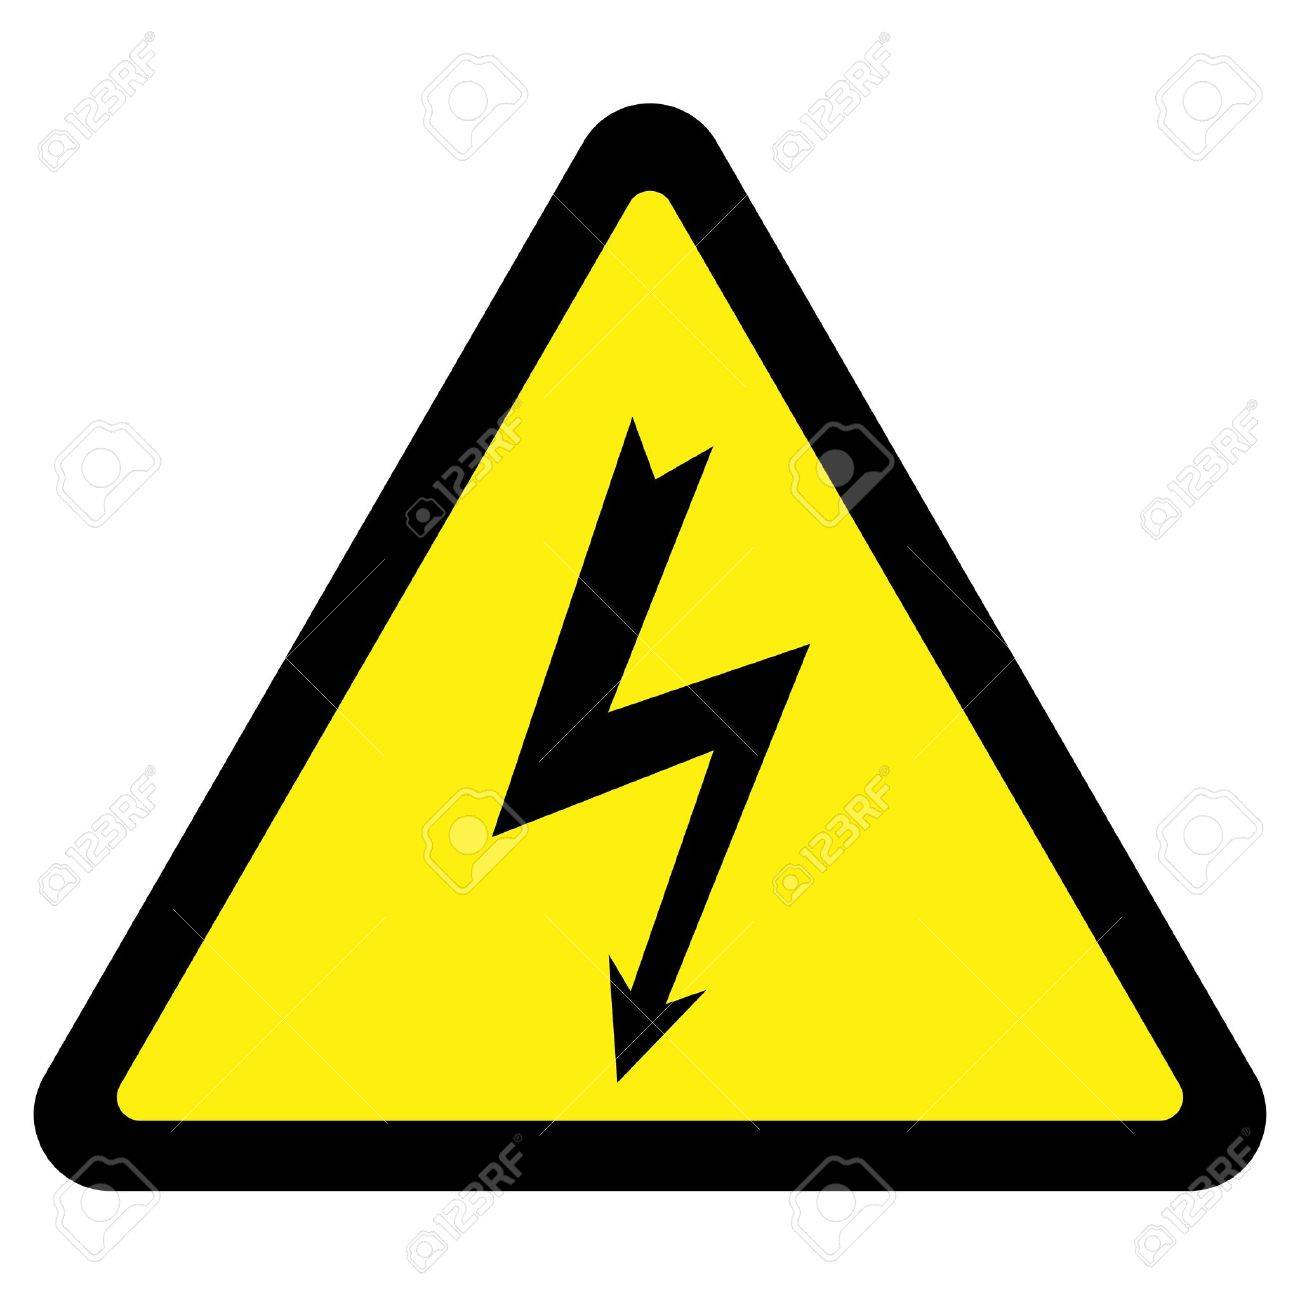 High Voltage Sign Stock Vector - 4380536